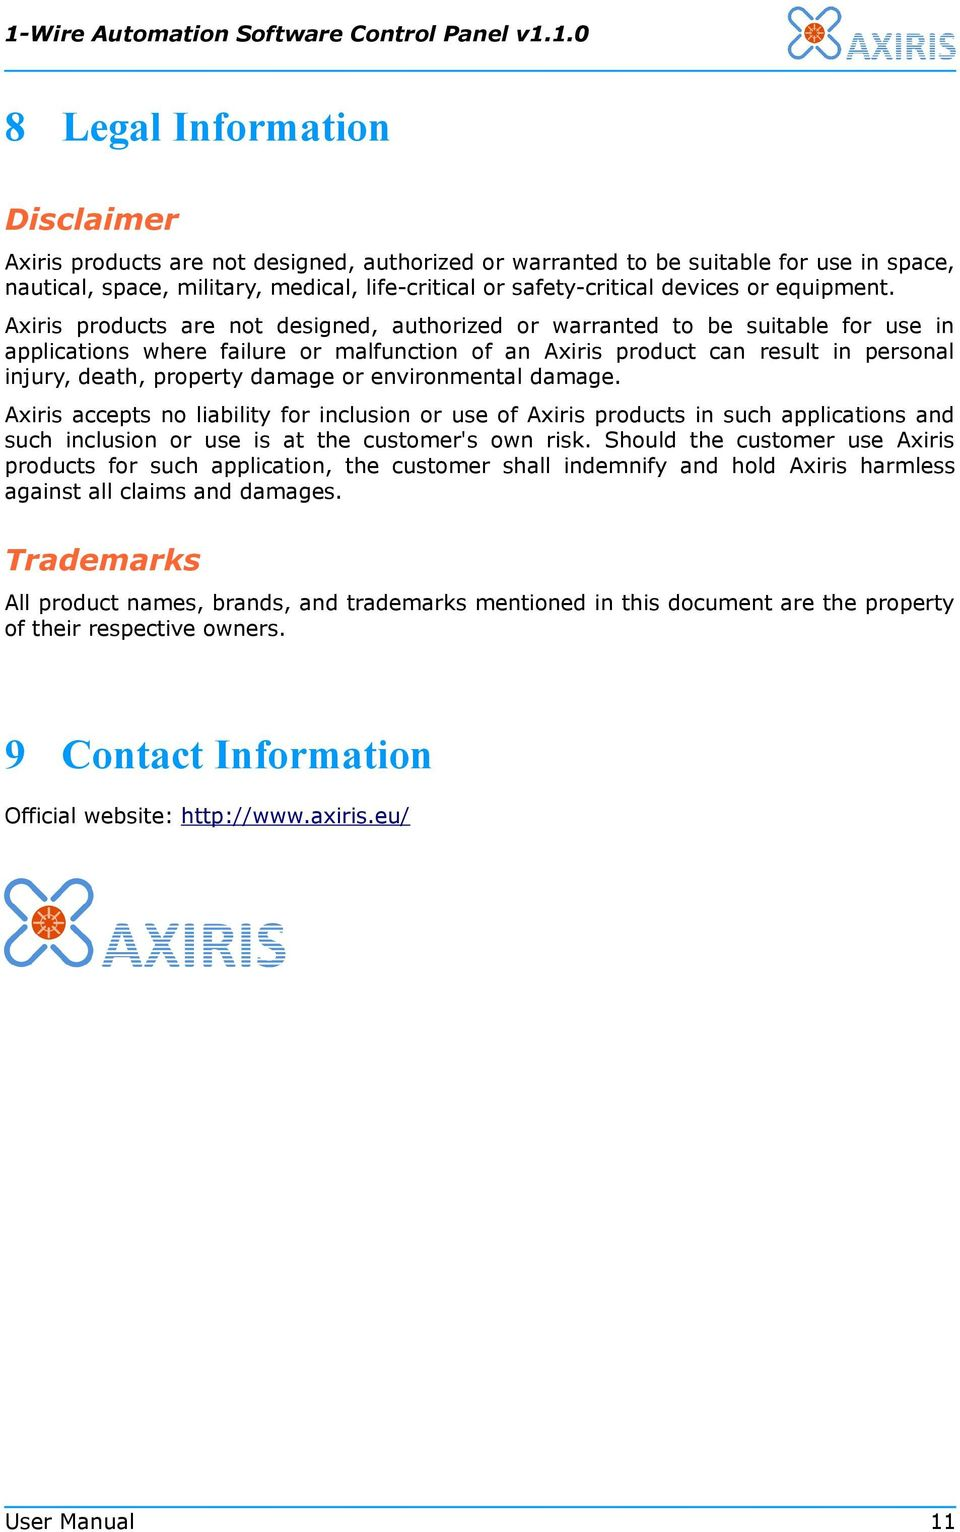 Axiris products are not designed, authorized or warranted to be suitable for use in applications where failure or malfunction of an Axiris product can result in personal injury, death, property